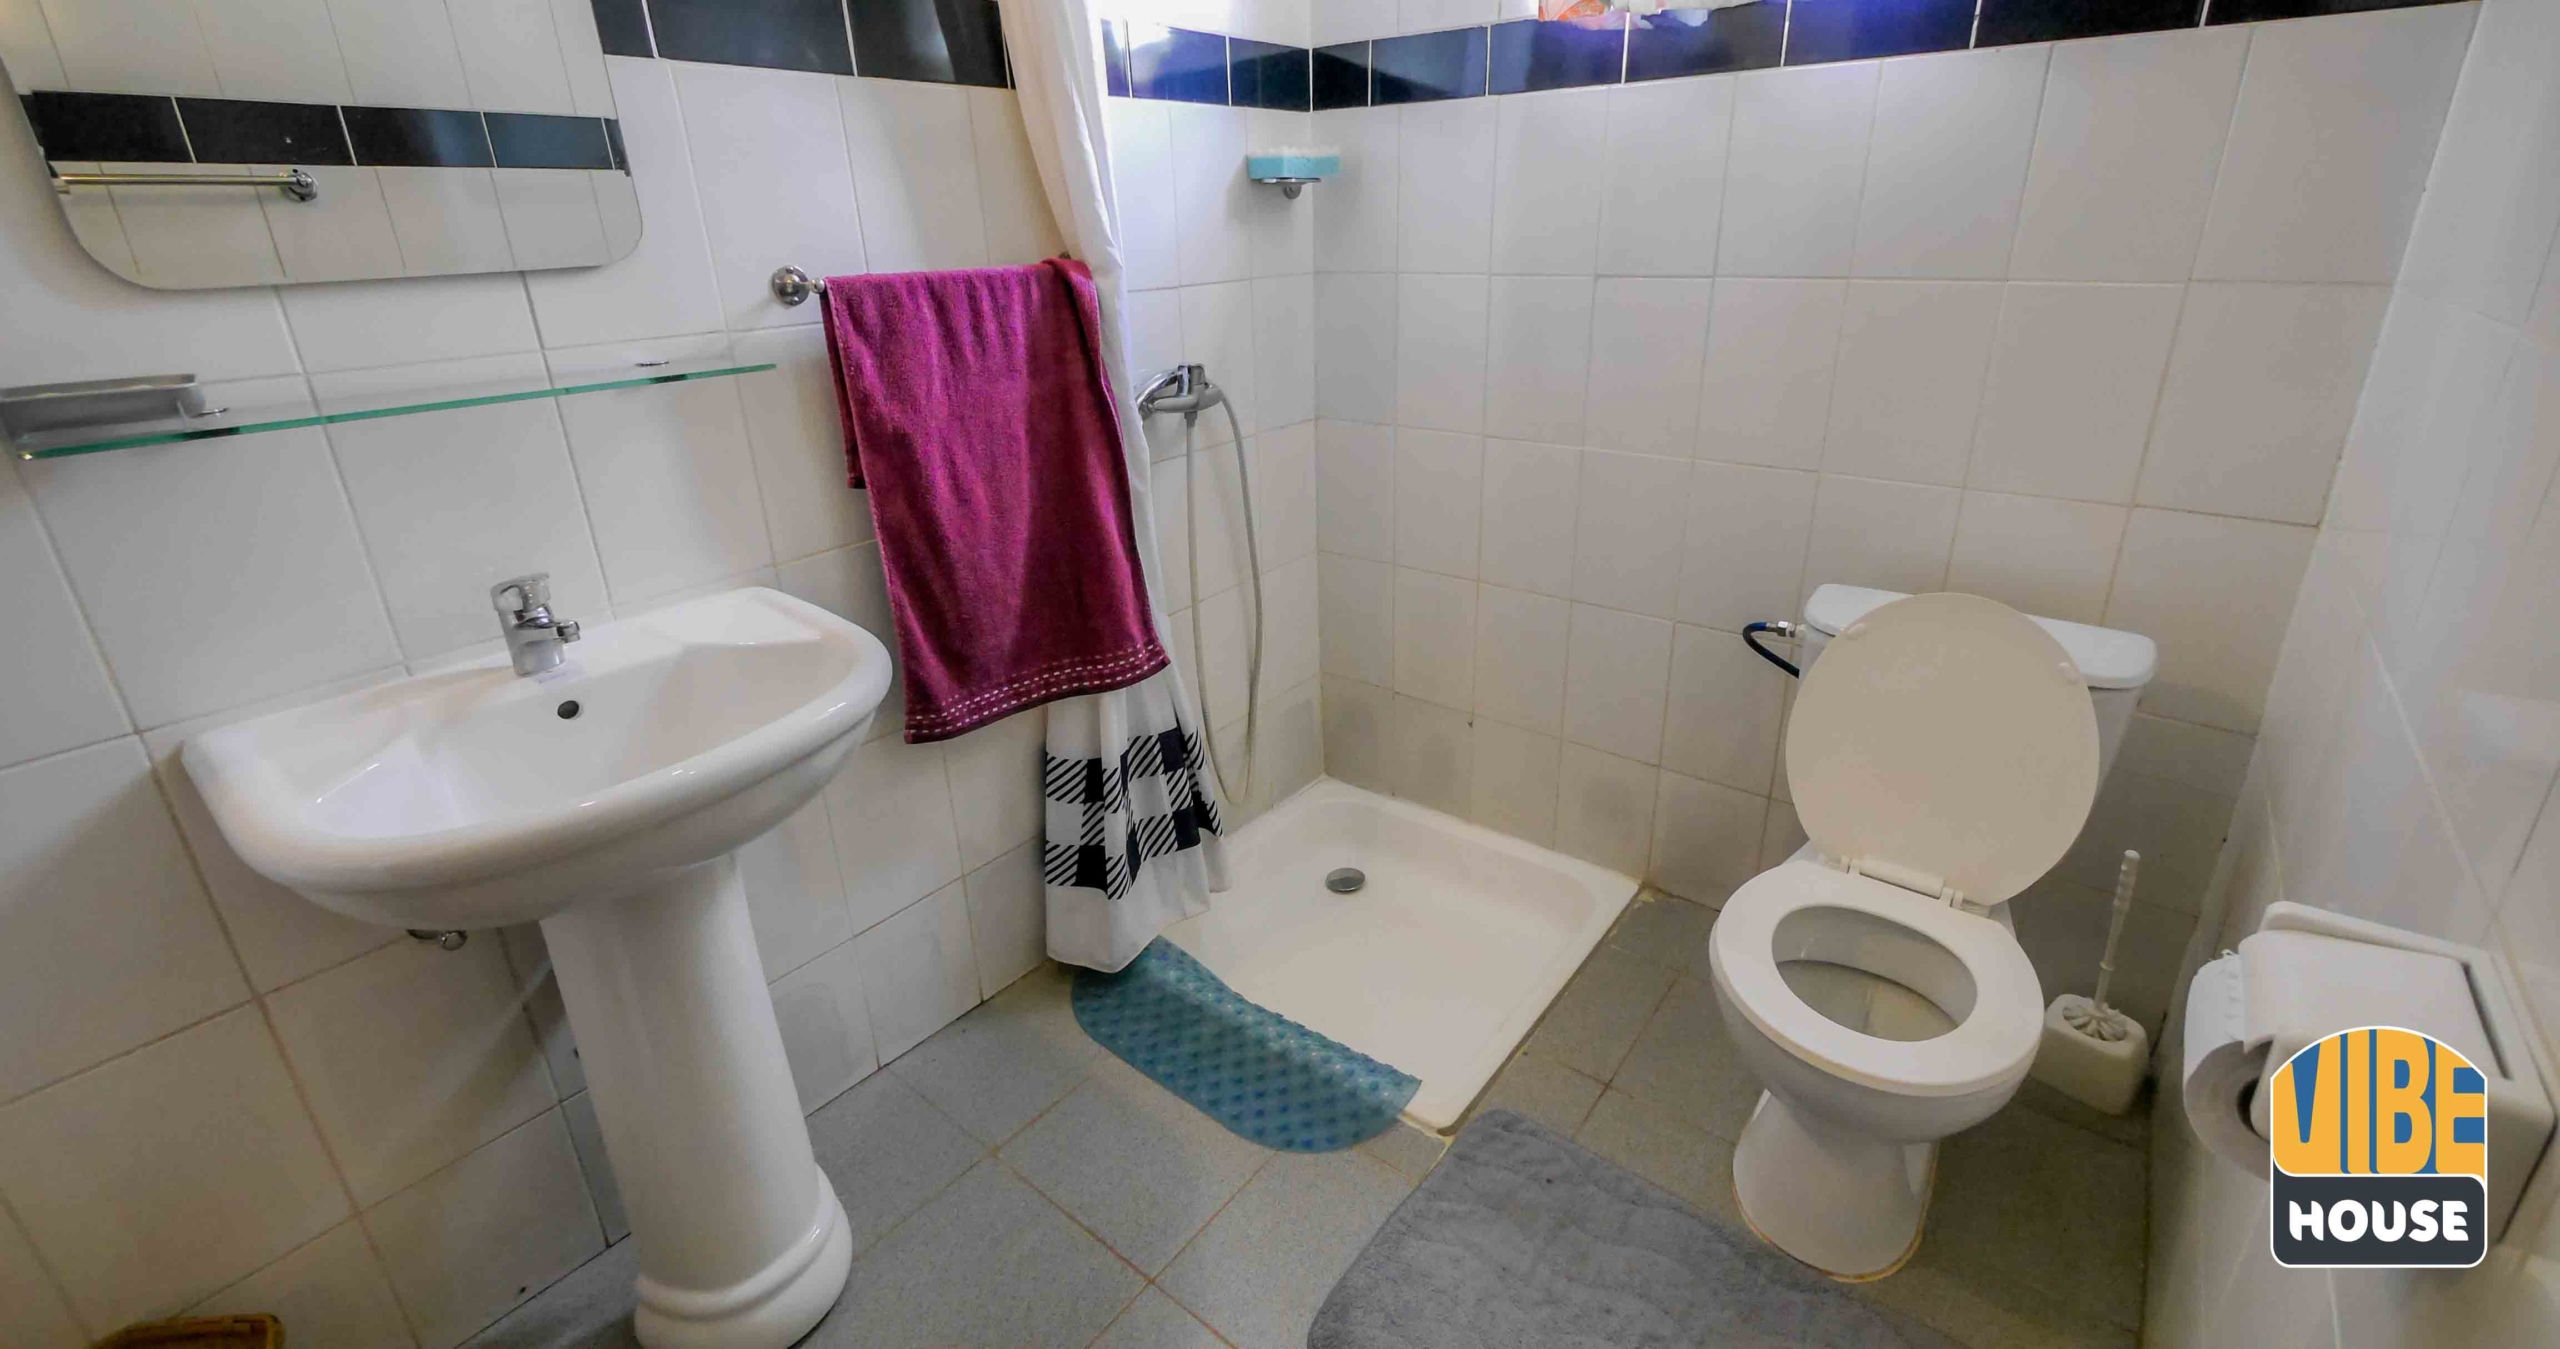 Studio apartment for rent in Kigali with clean bathroom